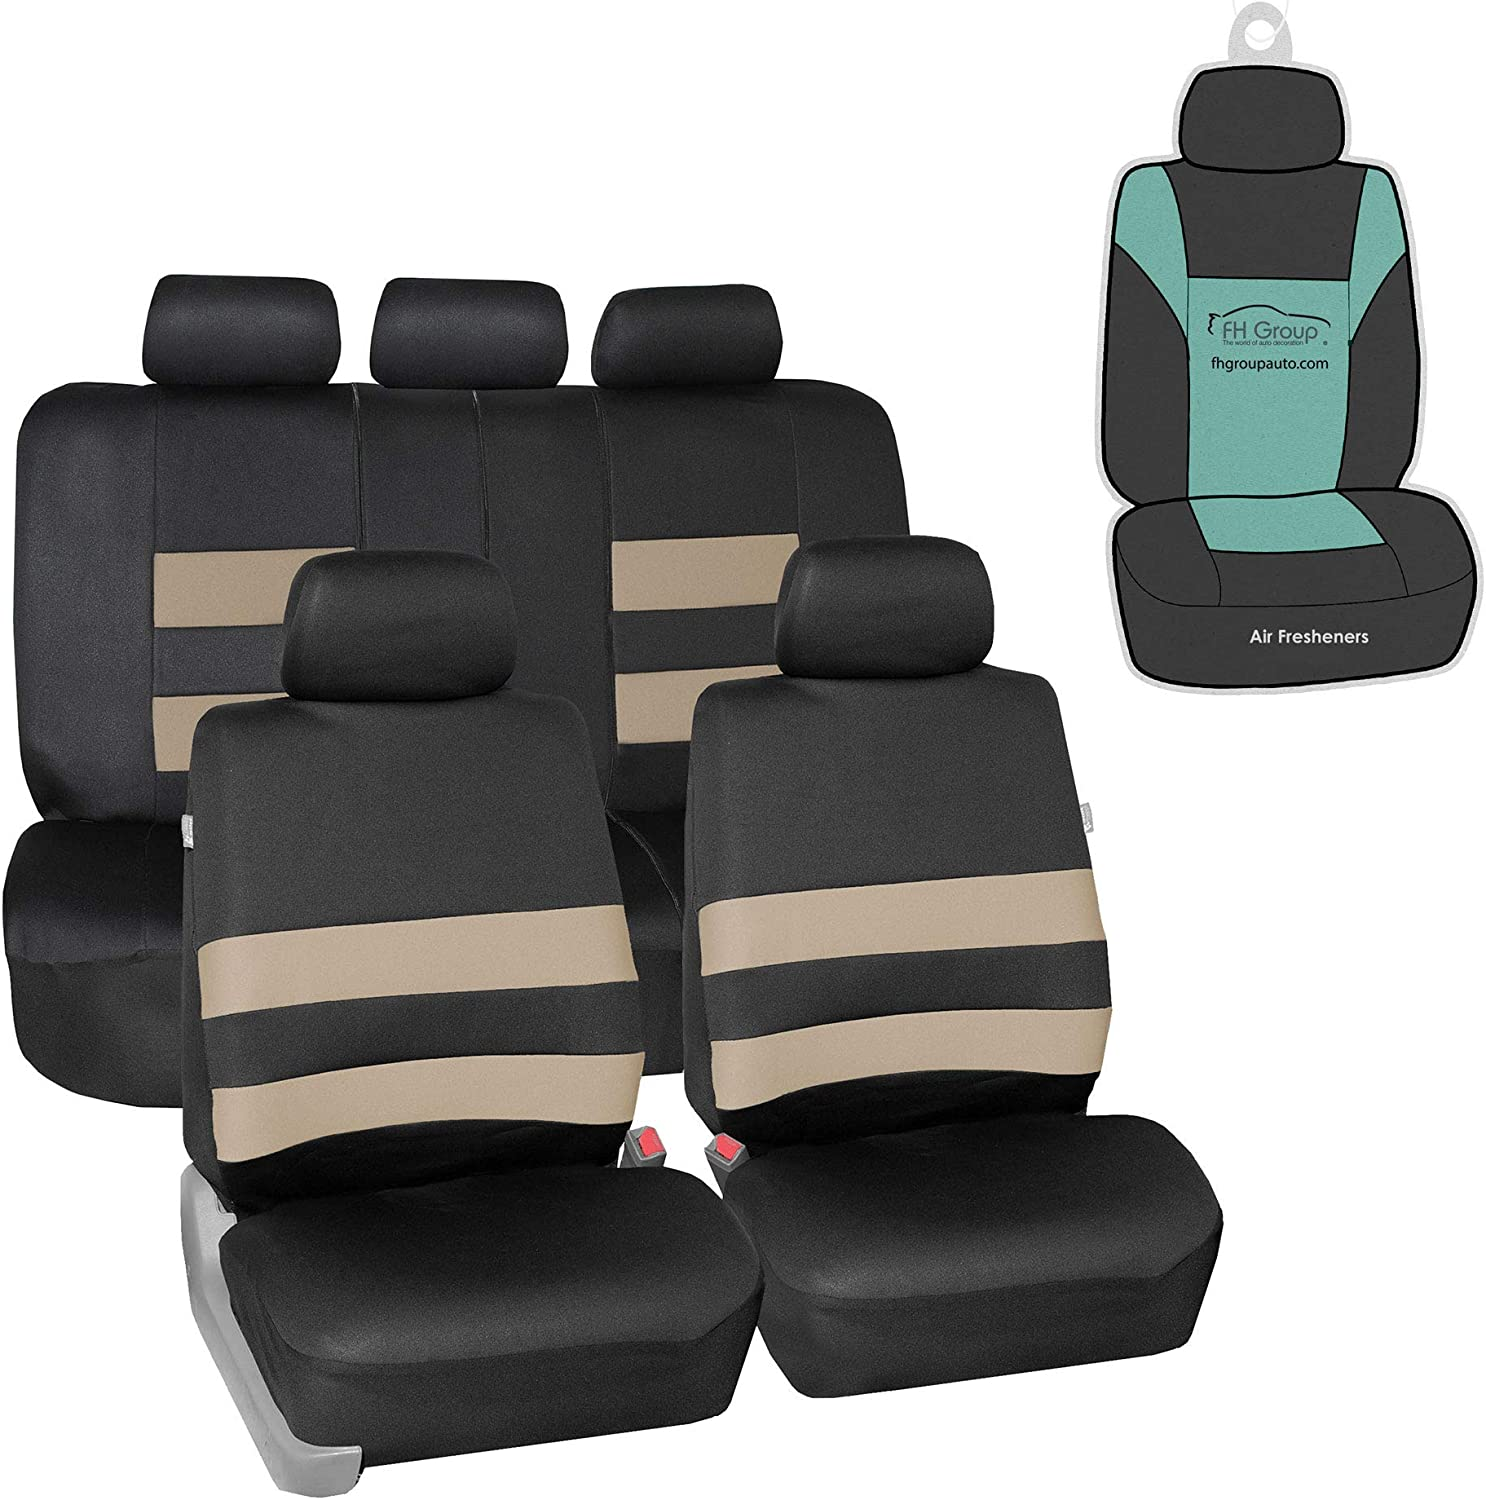 FH Group FB087115 Premium Neoprene Seat Covers (Beige) Full Set with Gift - Universal for Cars Trucks and SUVs